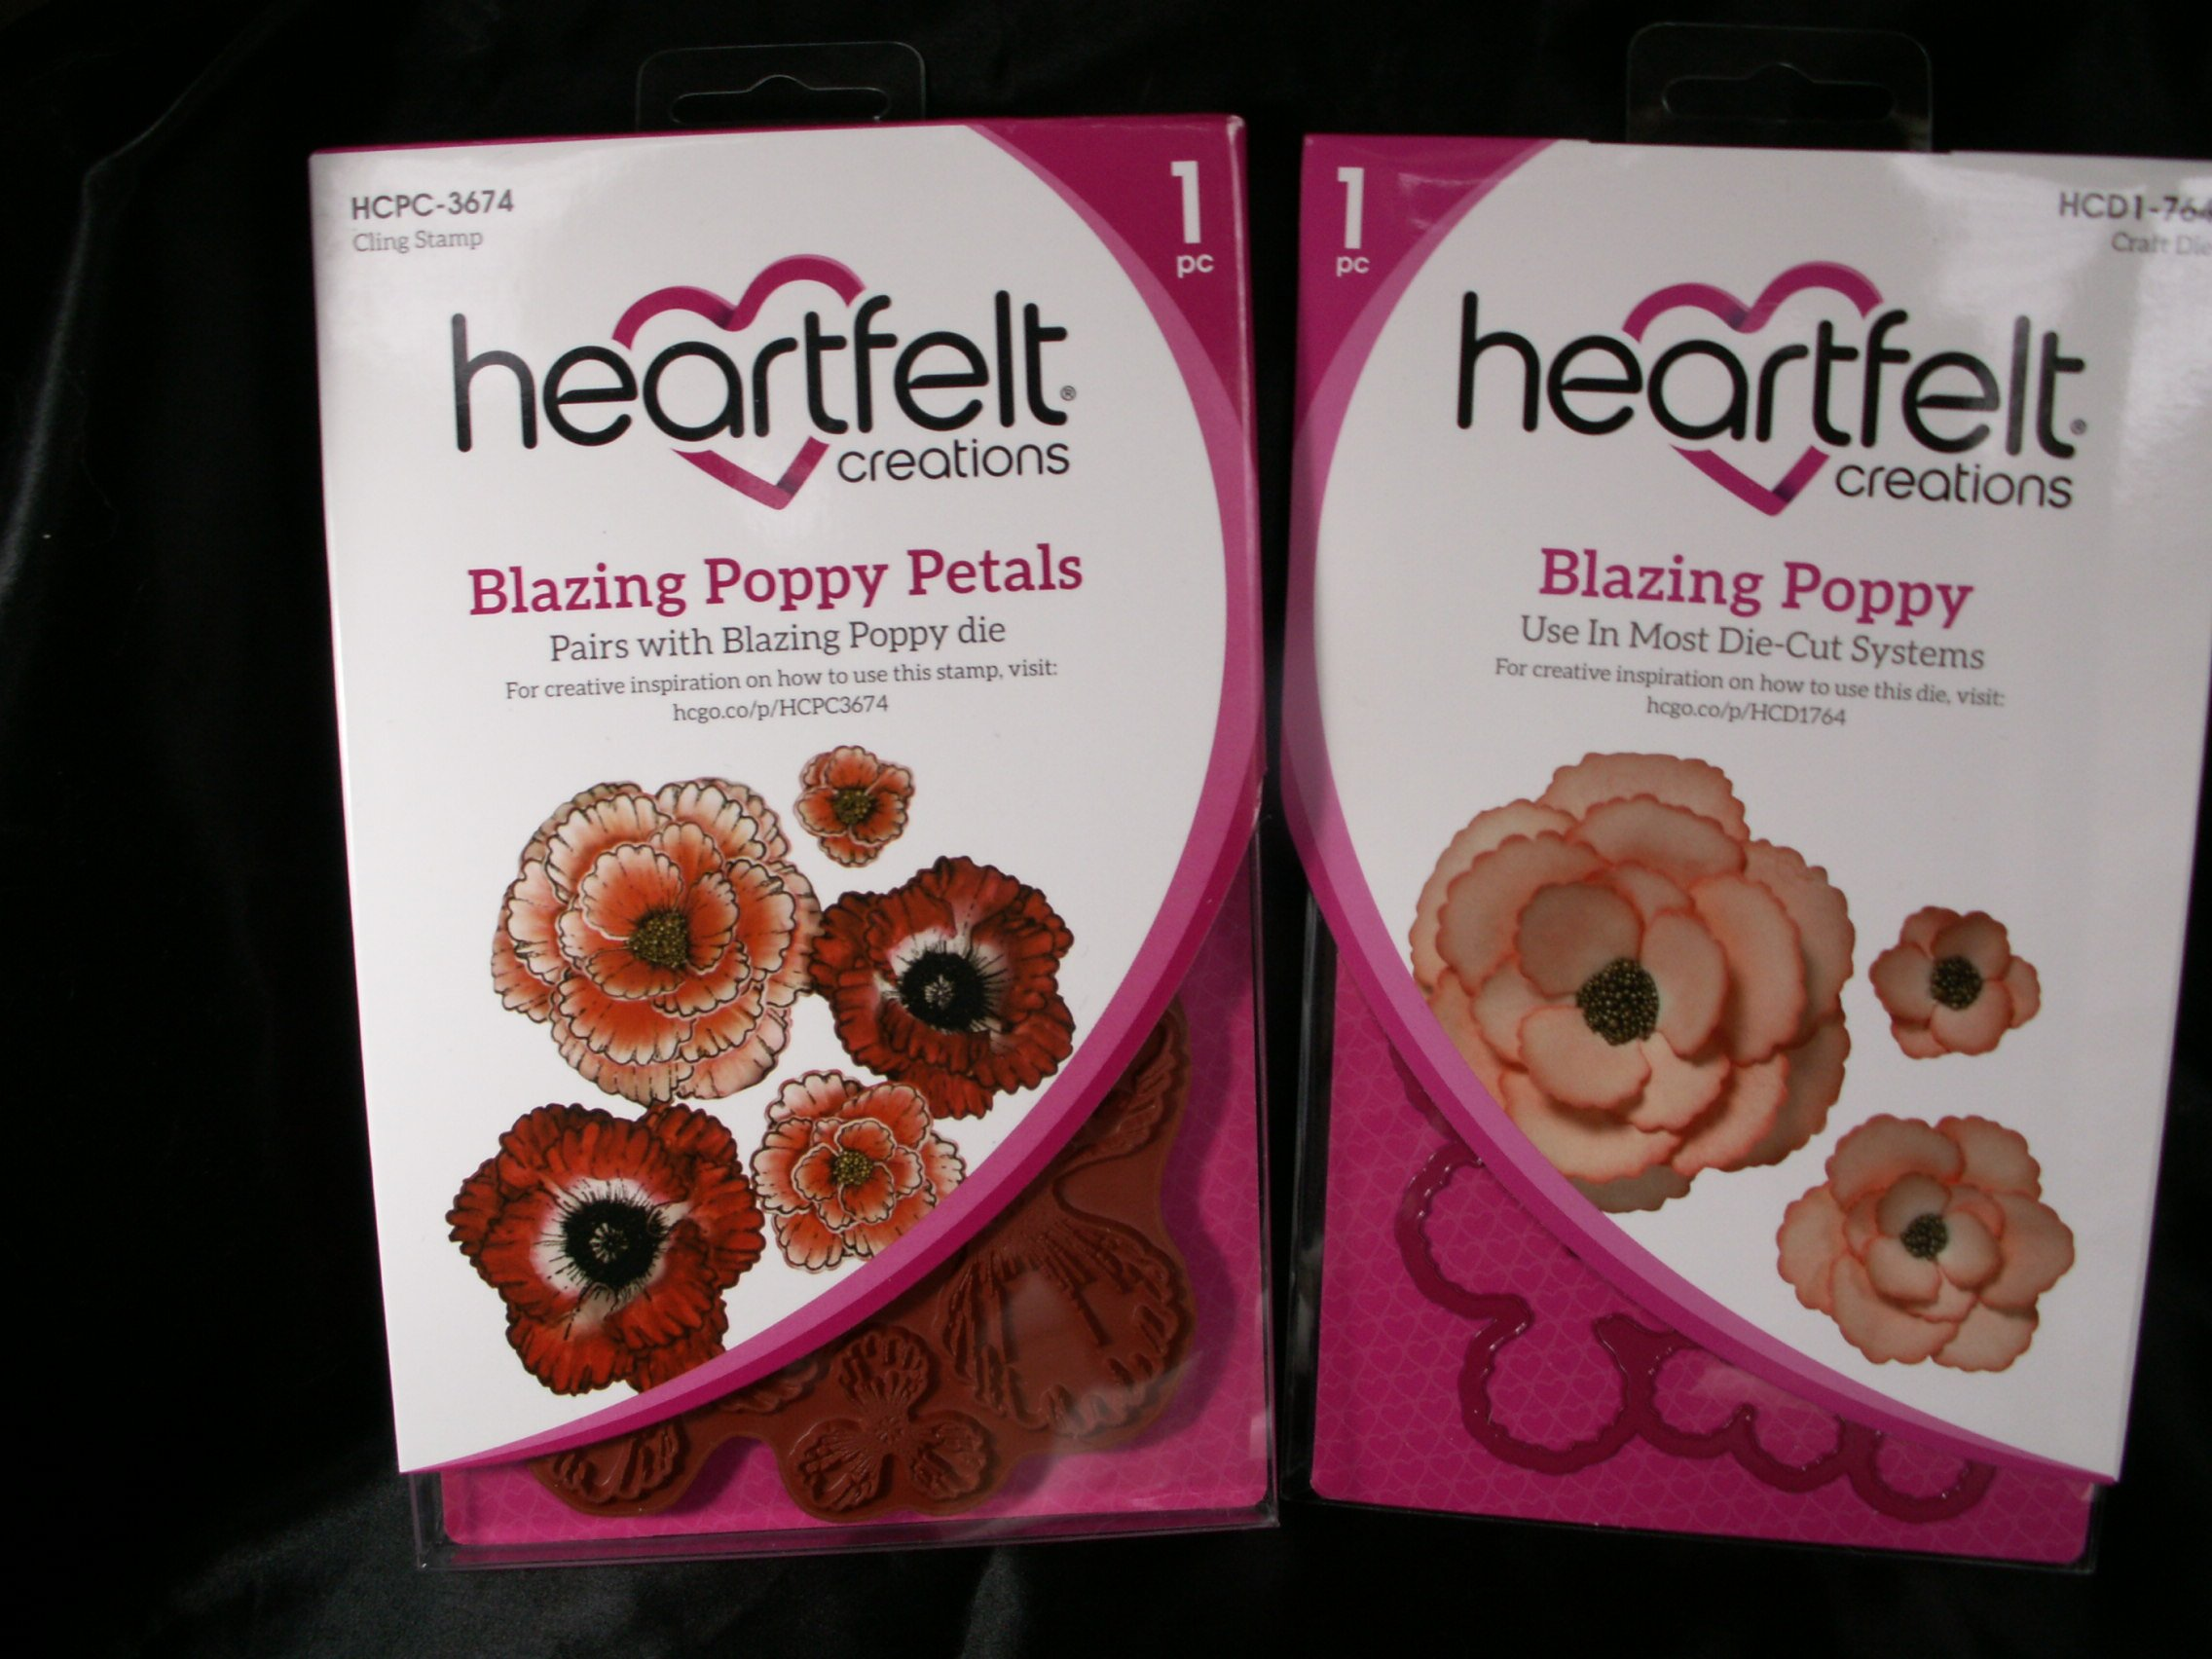 Bundle Heartfelt Creations Blazing Poppy Die & Stamp Set Pkg of 2 HCD1-764 & HCPC-3674